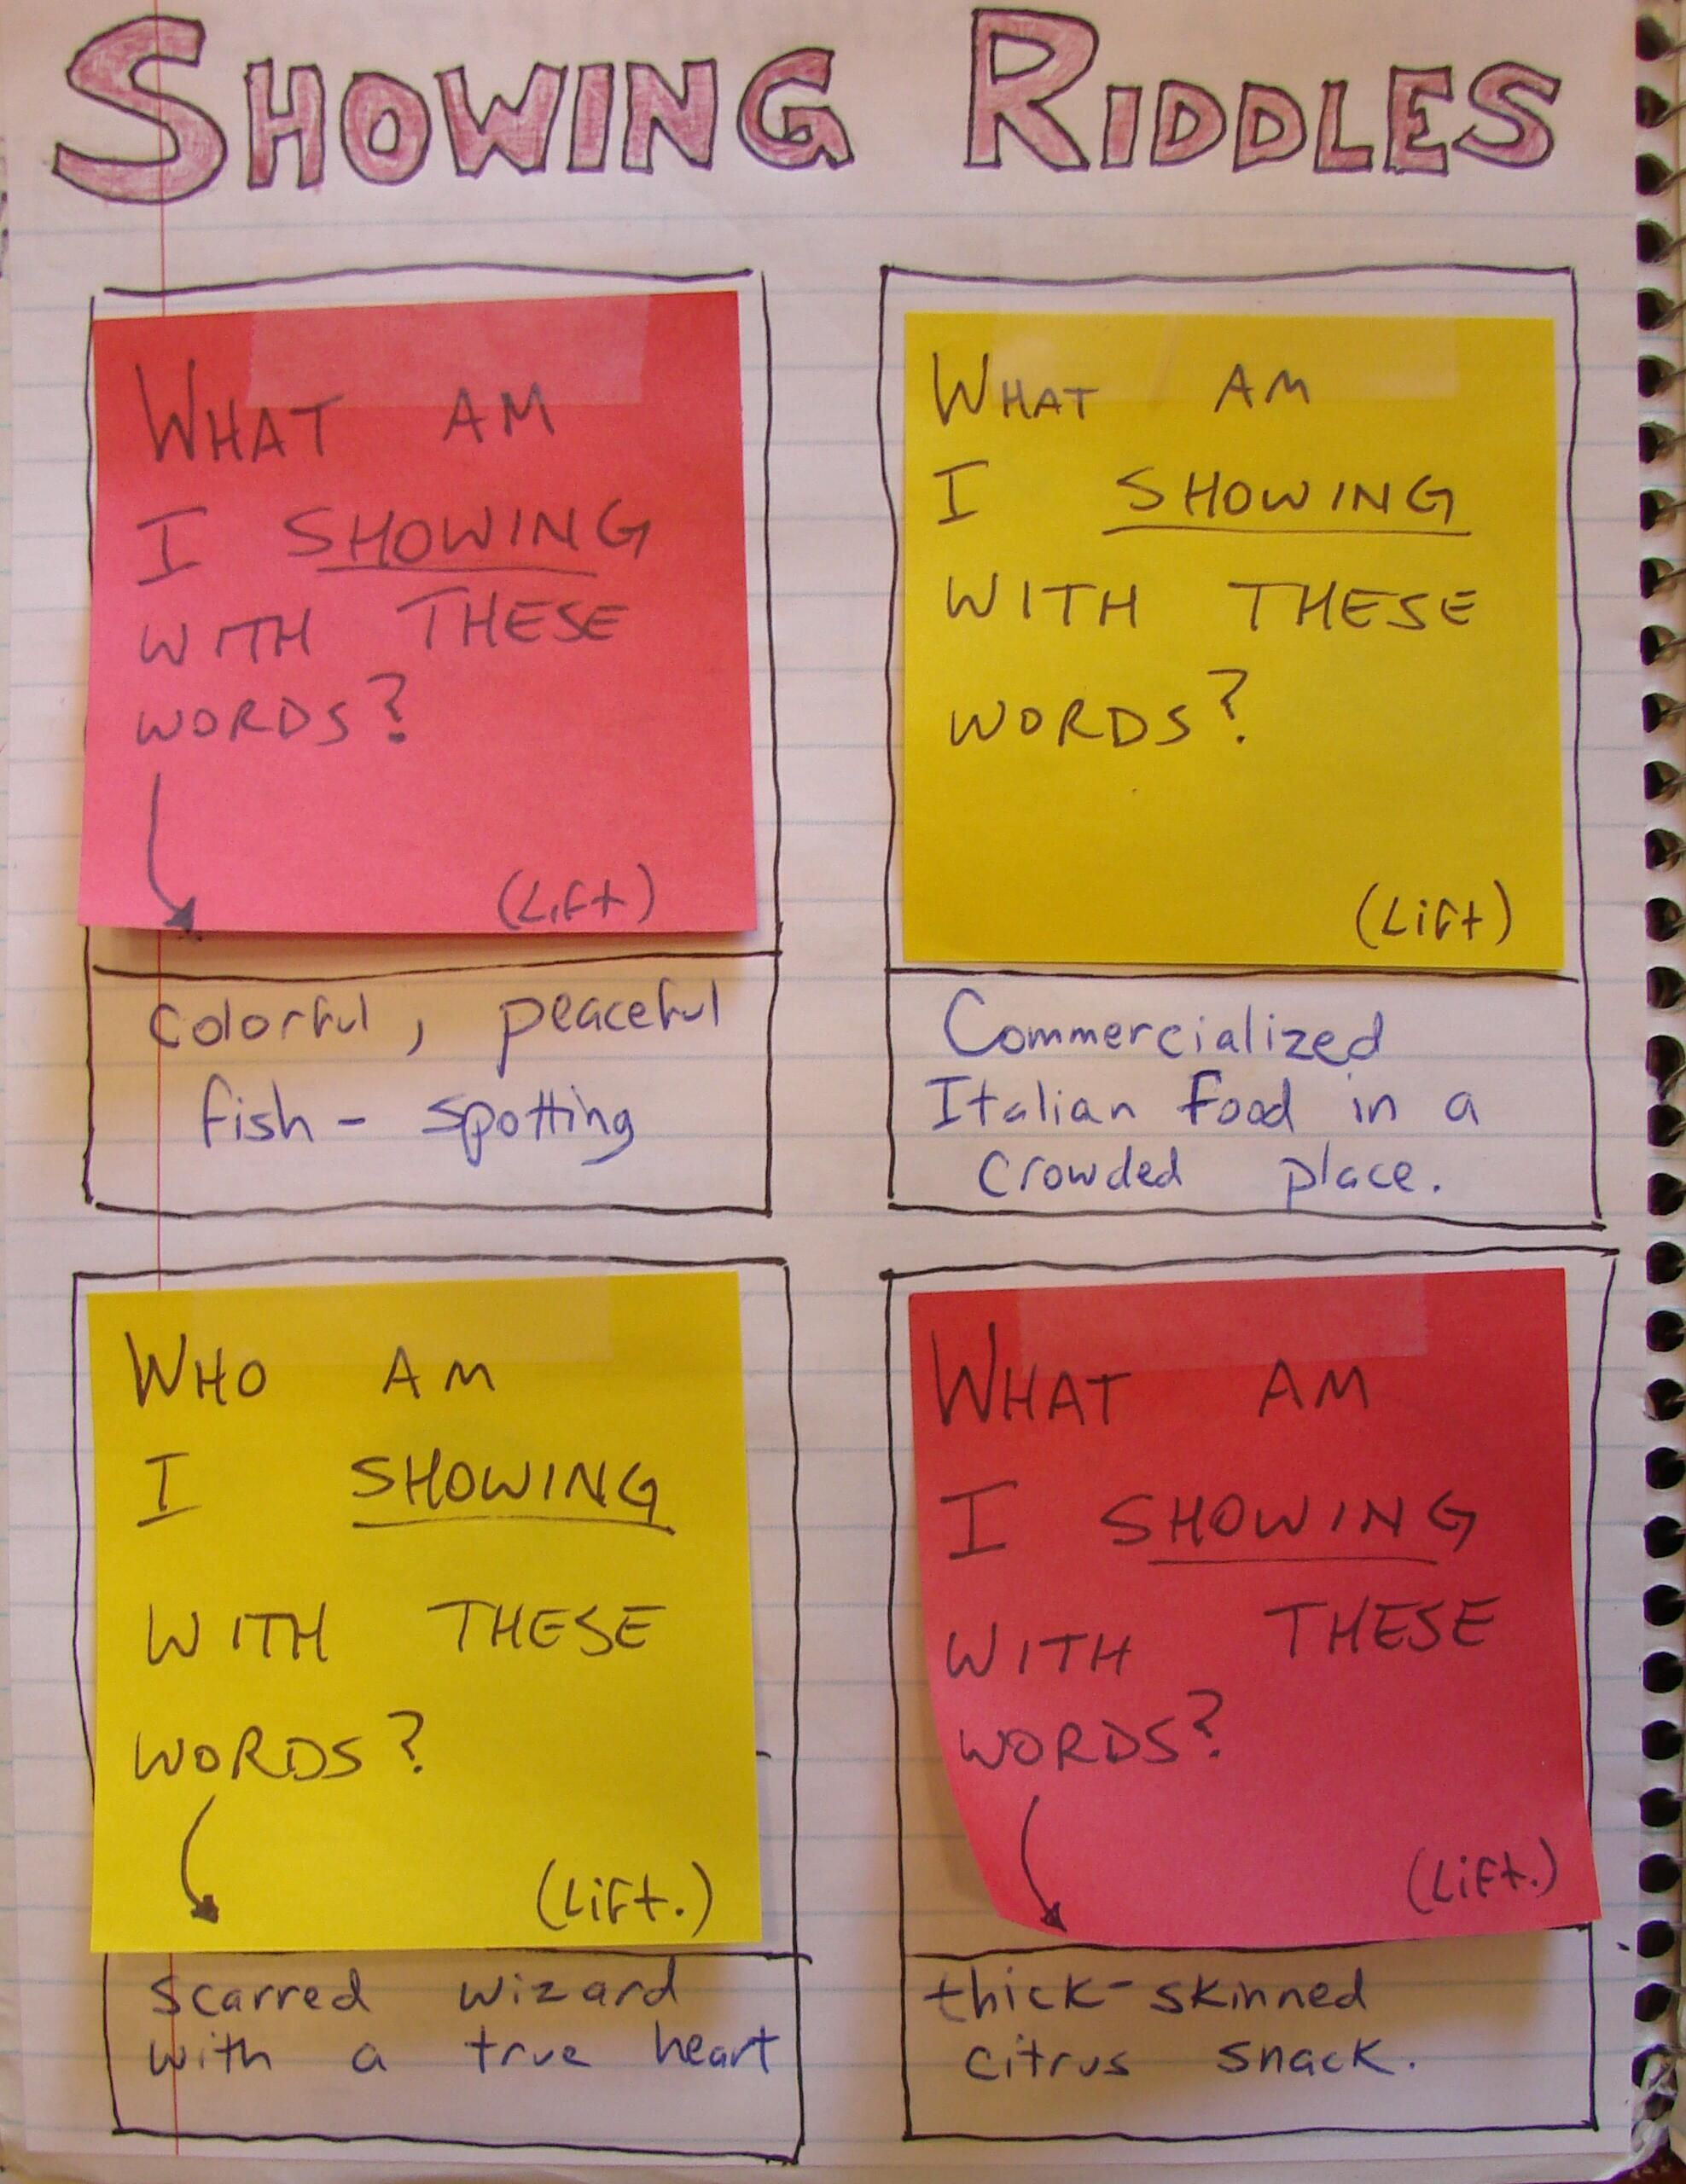 Many of my notebook pages are interactive, like this one that features riddles with answers found below the sticky notes. Students love this idea!  Access the lesson that inspired this page here: http://corbettharrison.com/free_lessons/Show-Dont-Tell.htm